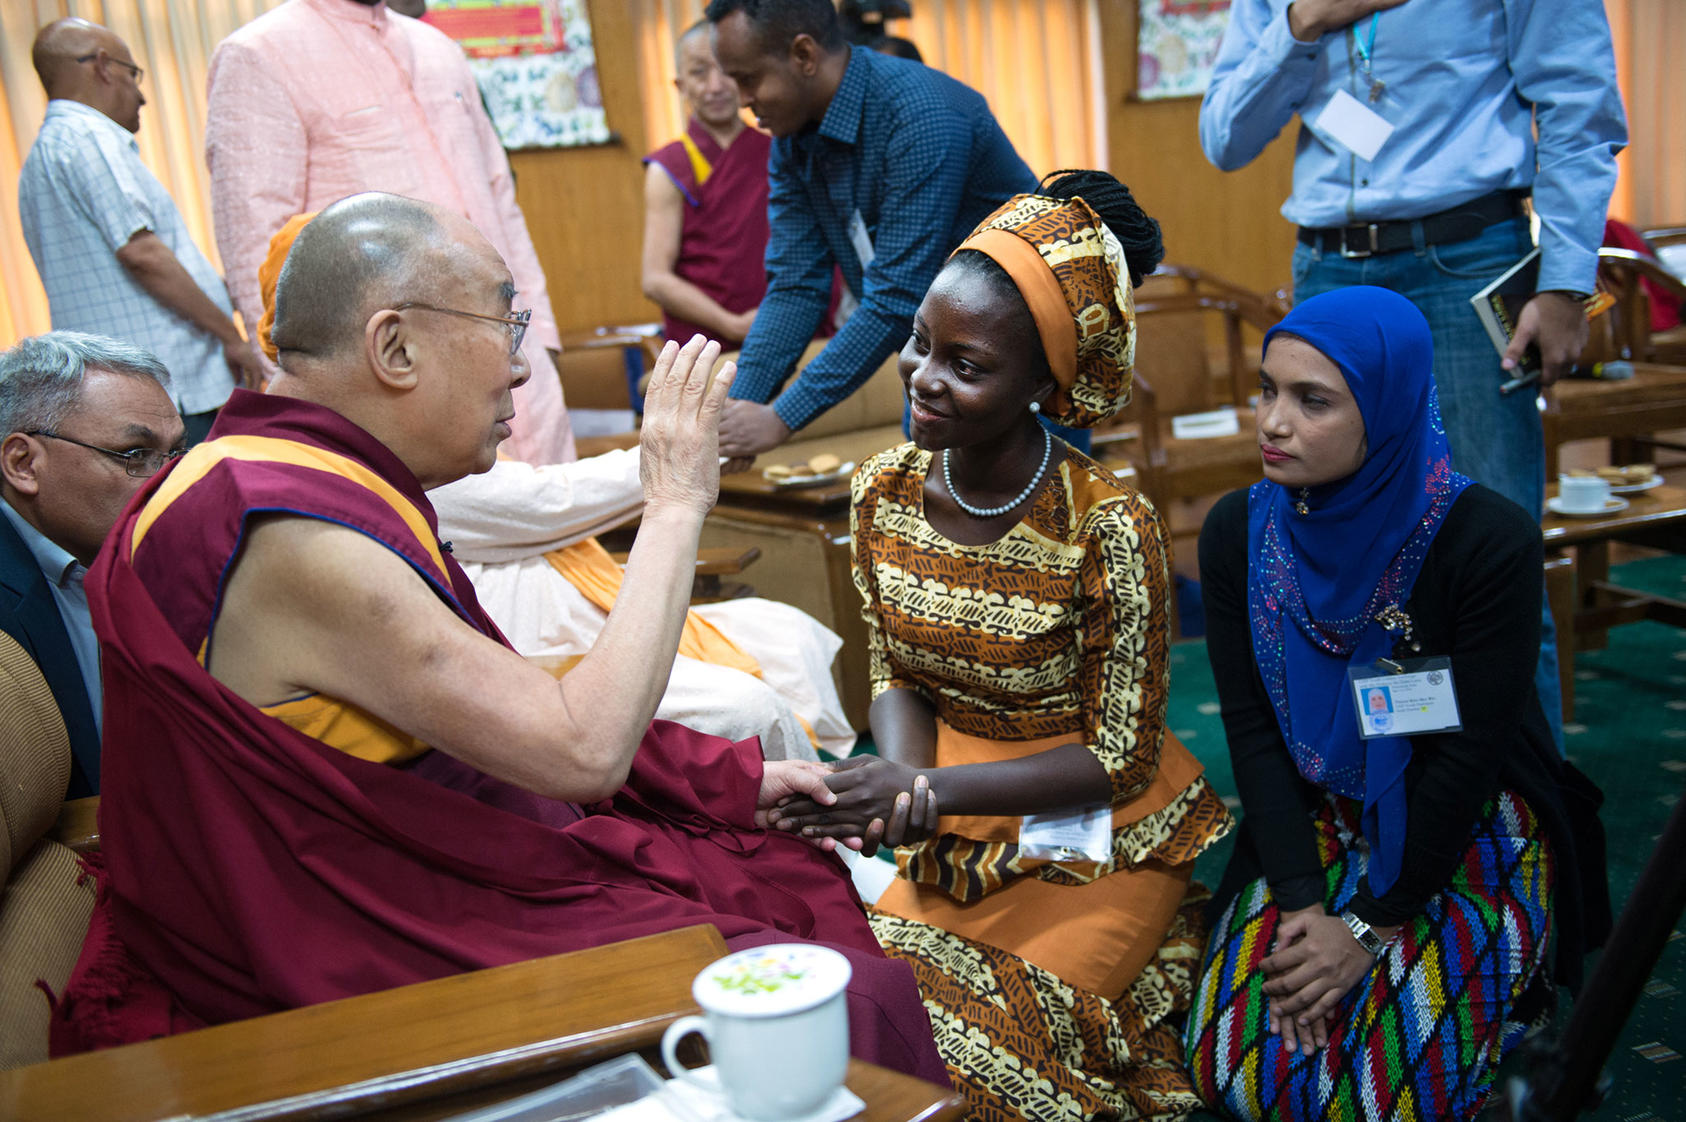 USIP Youth Leaders' Exchange with the Dalai Lama | United